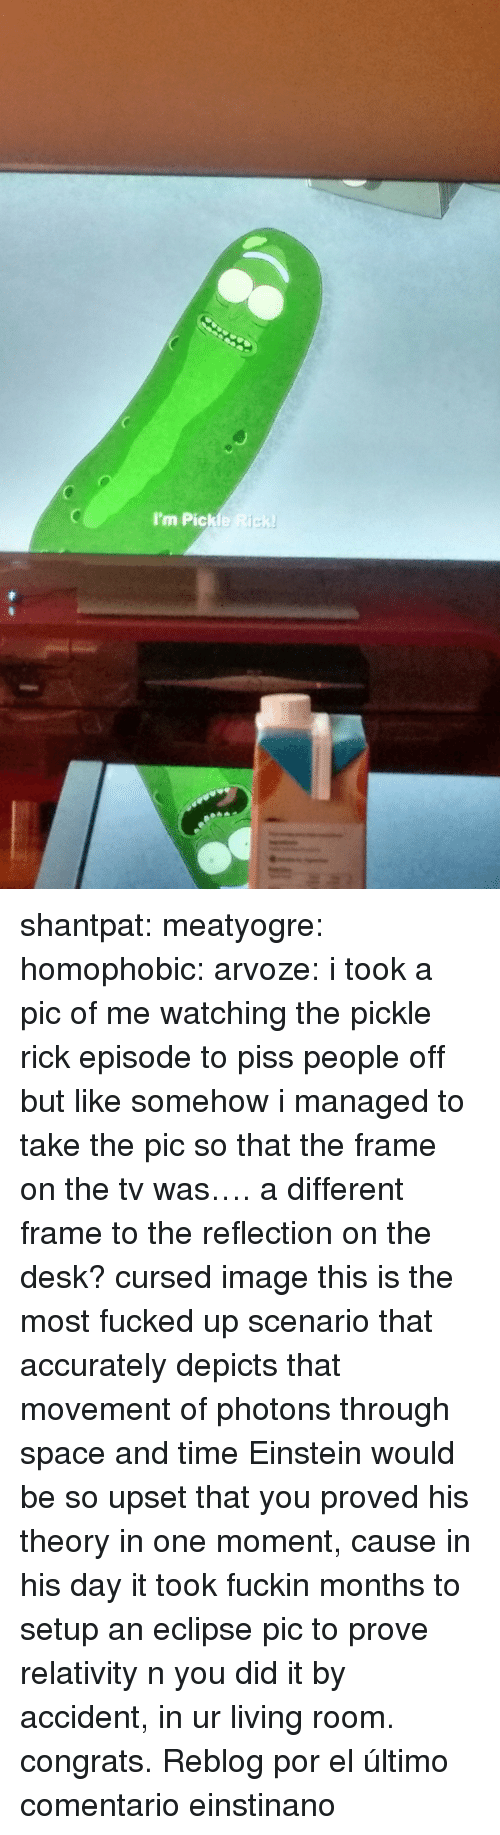 Tumblr, Blog, and Desk: I'm Pickle Rick shantpat: meatyogre:  homophobic:  arvoze: i took a pic of me watching the pickle rick episode to piss people off but like somehow i managed to take the pic so that the frame on the tv was…. a different frame to the reflection on the desk?  cursed image  this is the most fucked up scenario that accurately depicts that movement of photons through space and time  Einstein would be so upset that you proved his theory in one moment, cause in his day it took fuckin months to setup an eclipse pic to prove relativity n you did it by accident, in ur living room. congrats.   Reblog por el último comentario einstinano